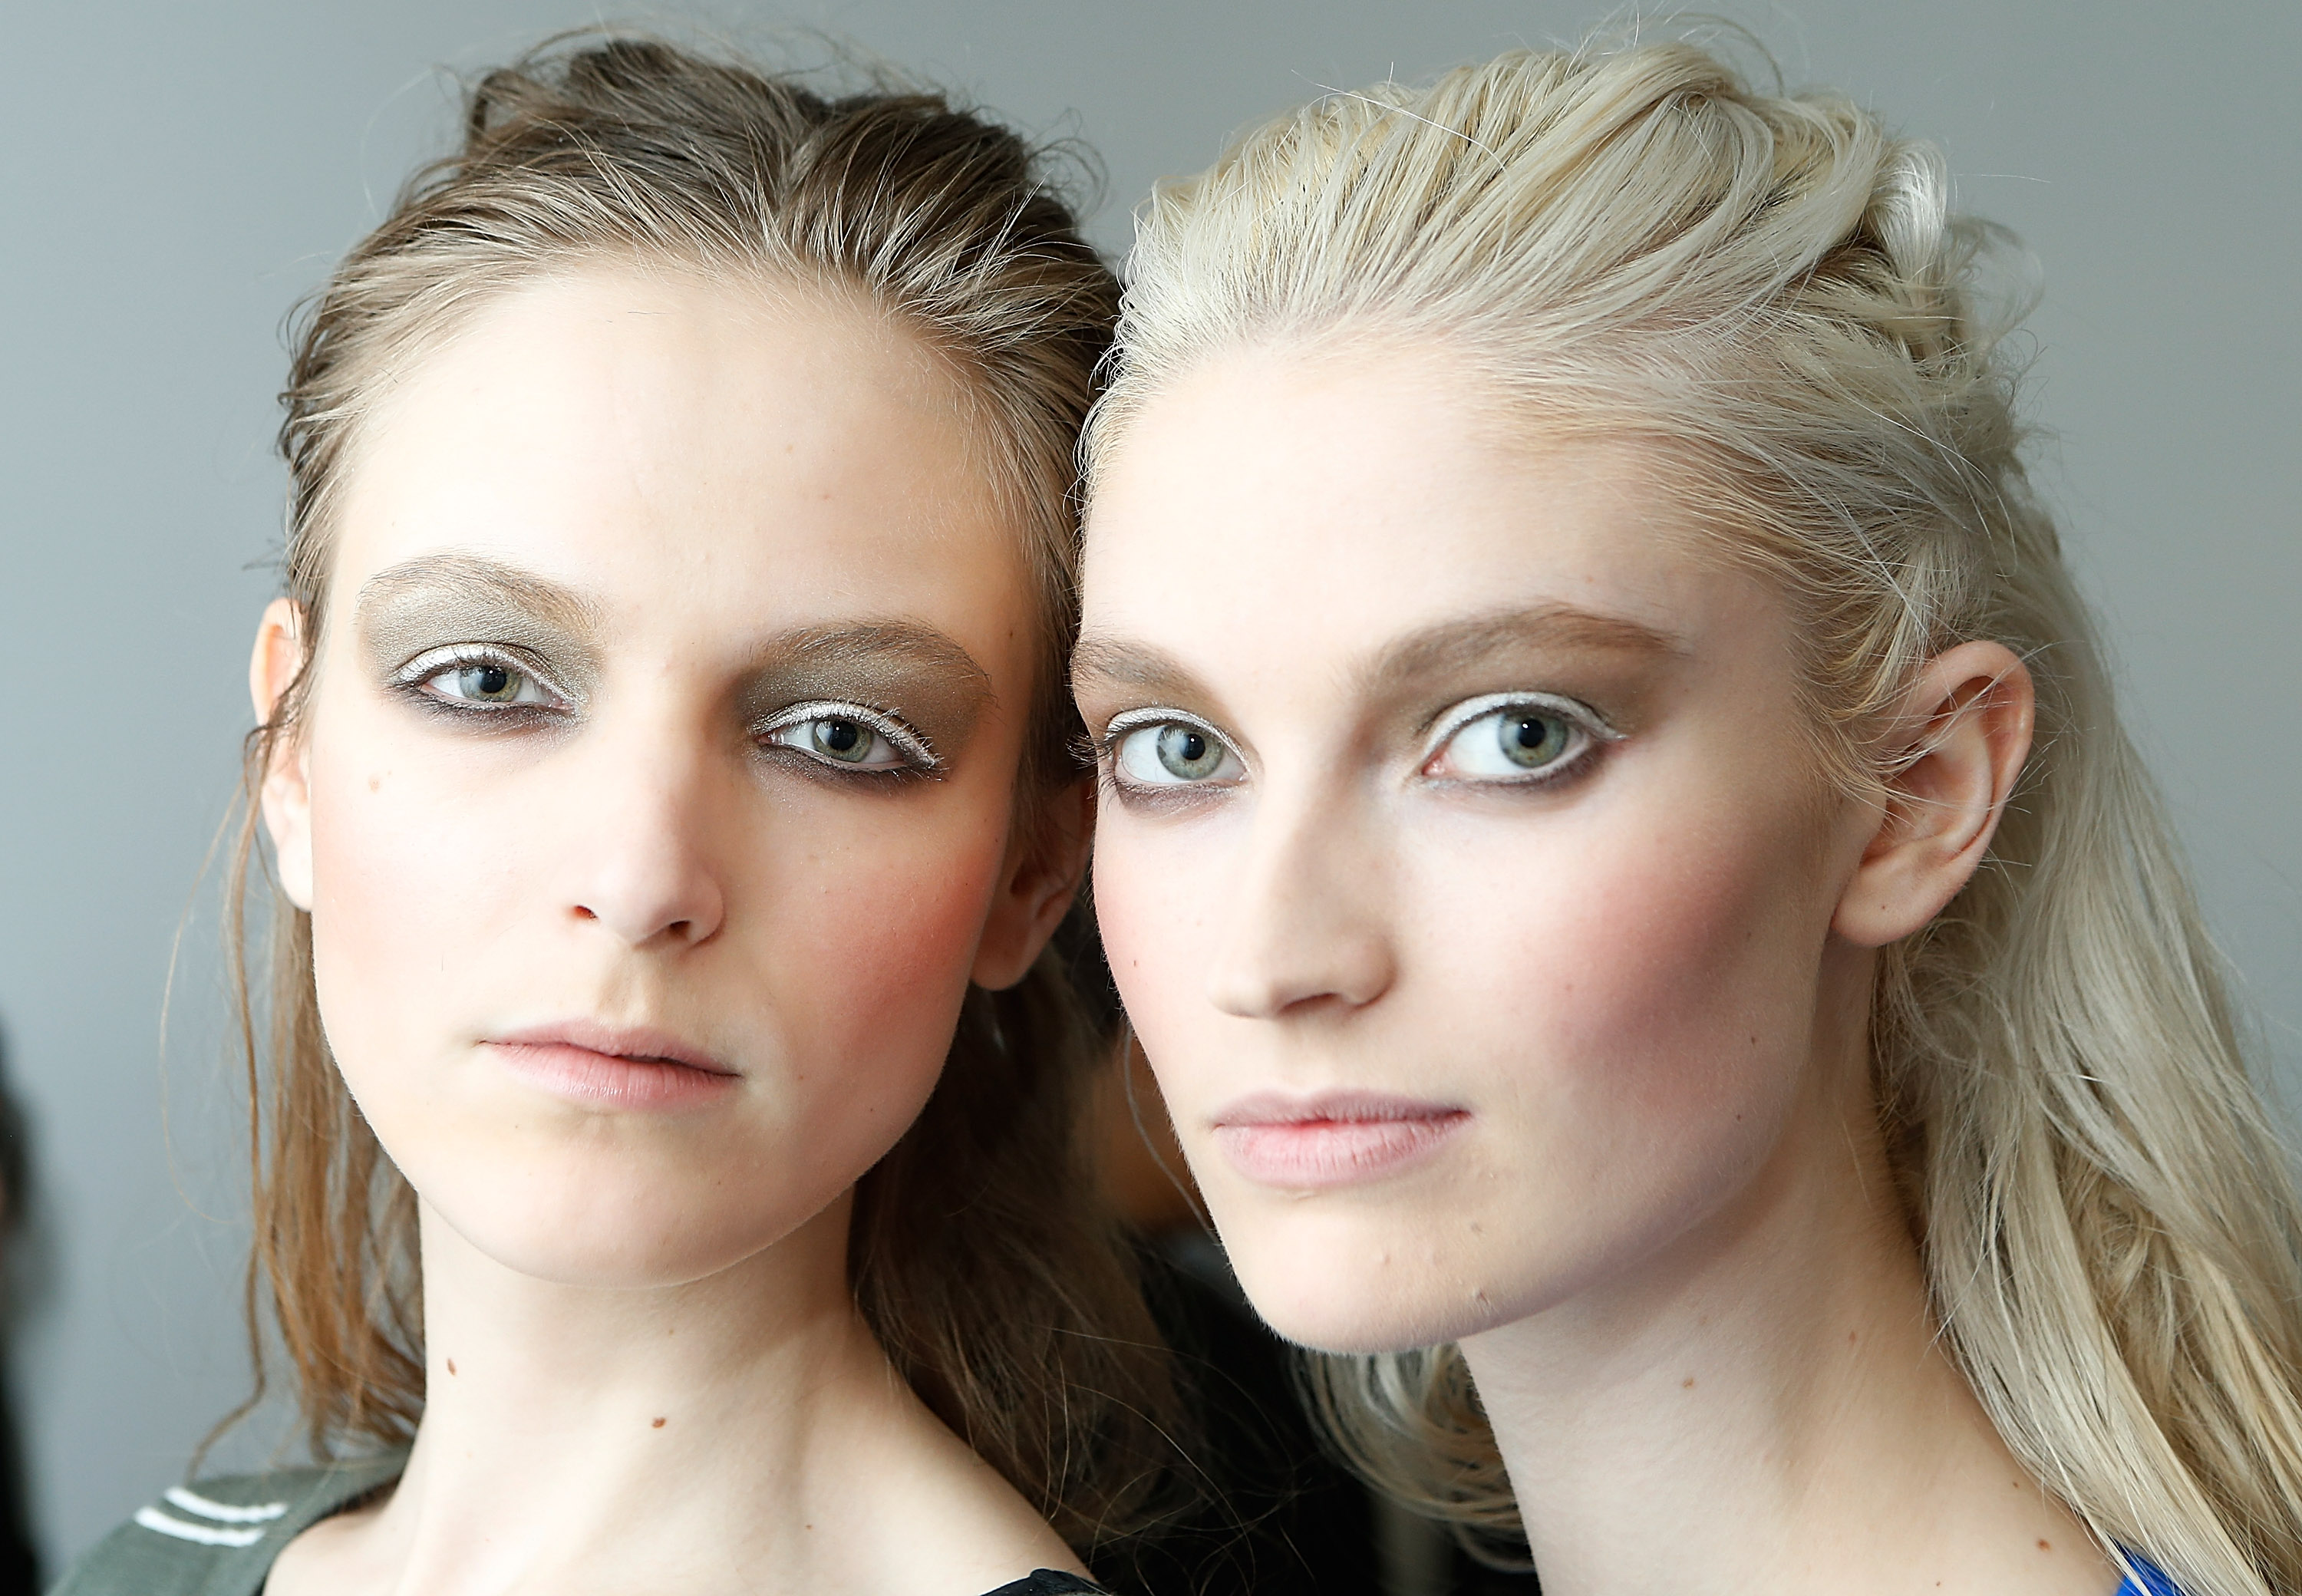 Helena Greyhorse (R) prepares backstage the Zero + Maria Cornejo show during Mercedes-Benz Fashion Week Fall 2014  on February 10, 2014 in New York City